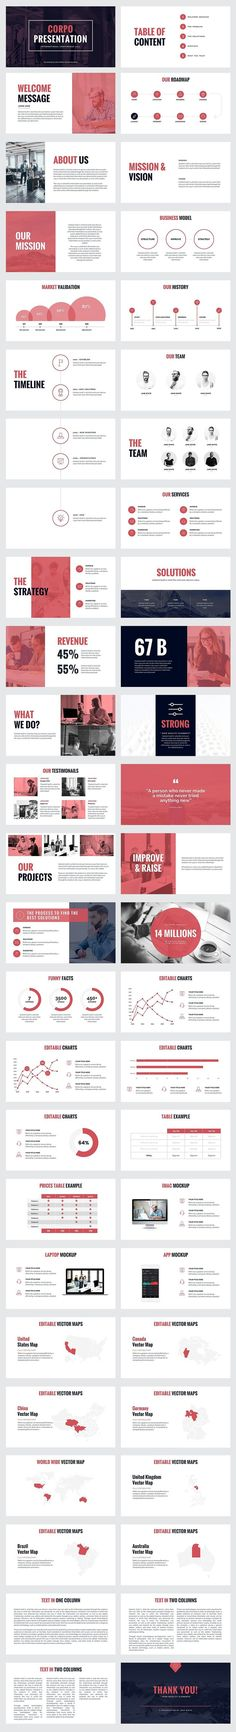 business powerpoint template #presentation